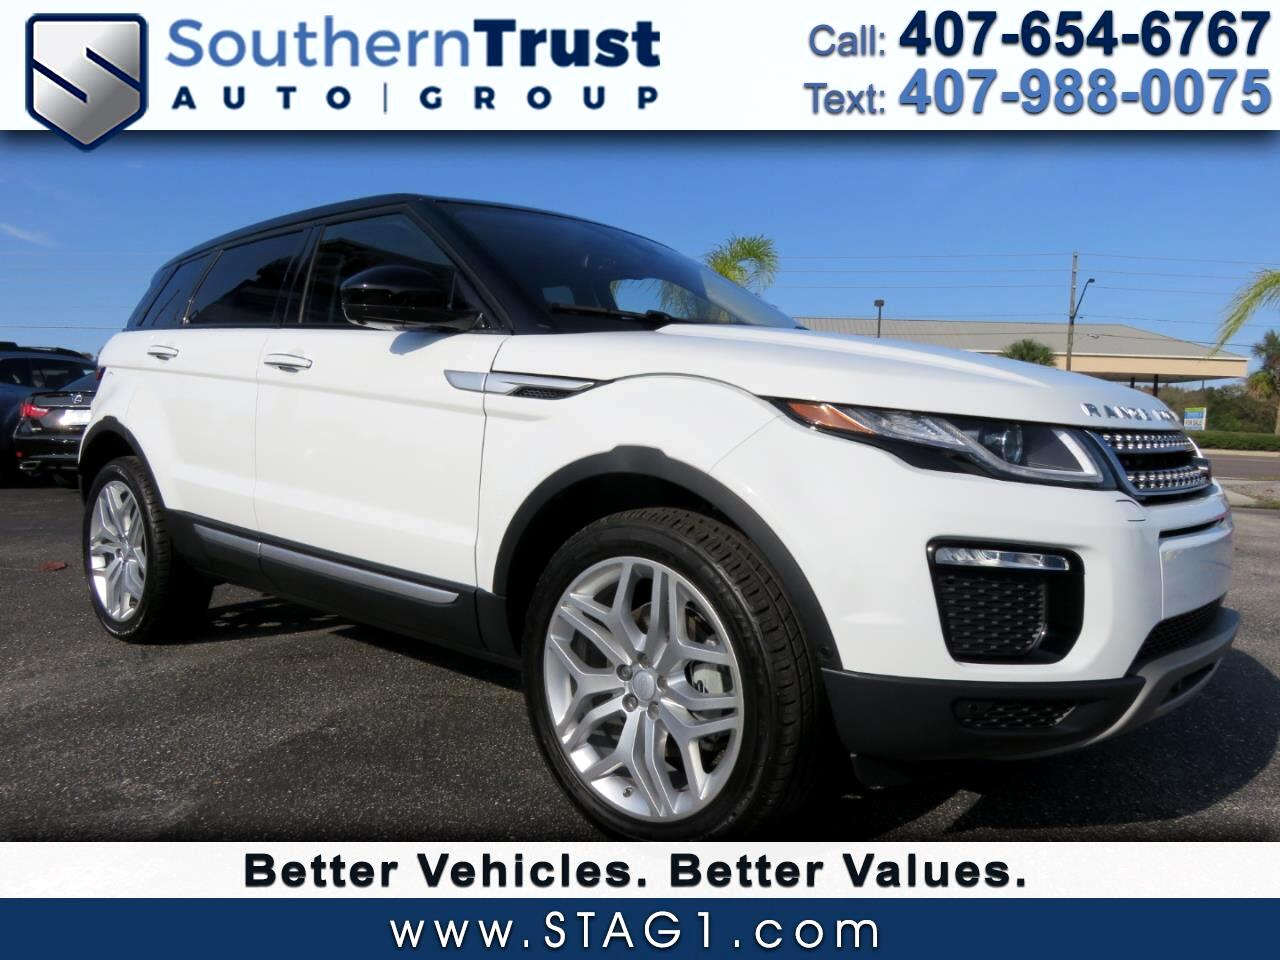 Land Rover Range Rover Evoque 5 Door HSE 2018